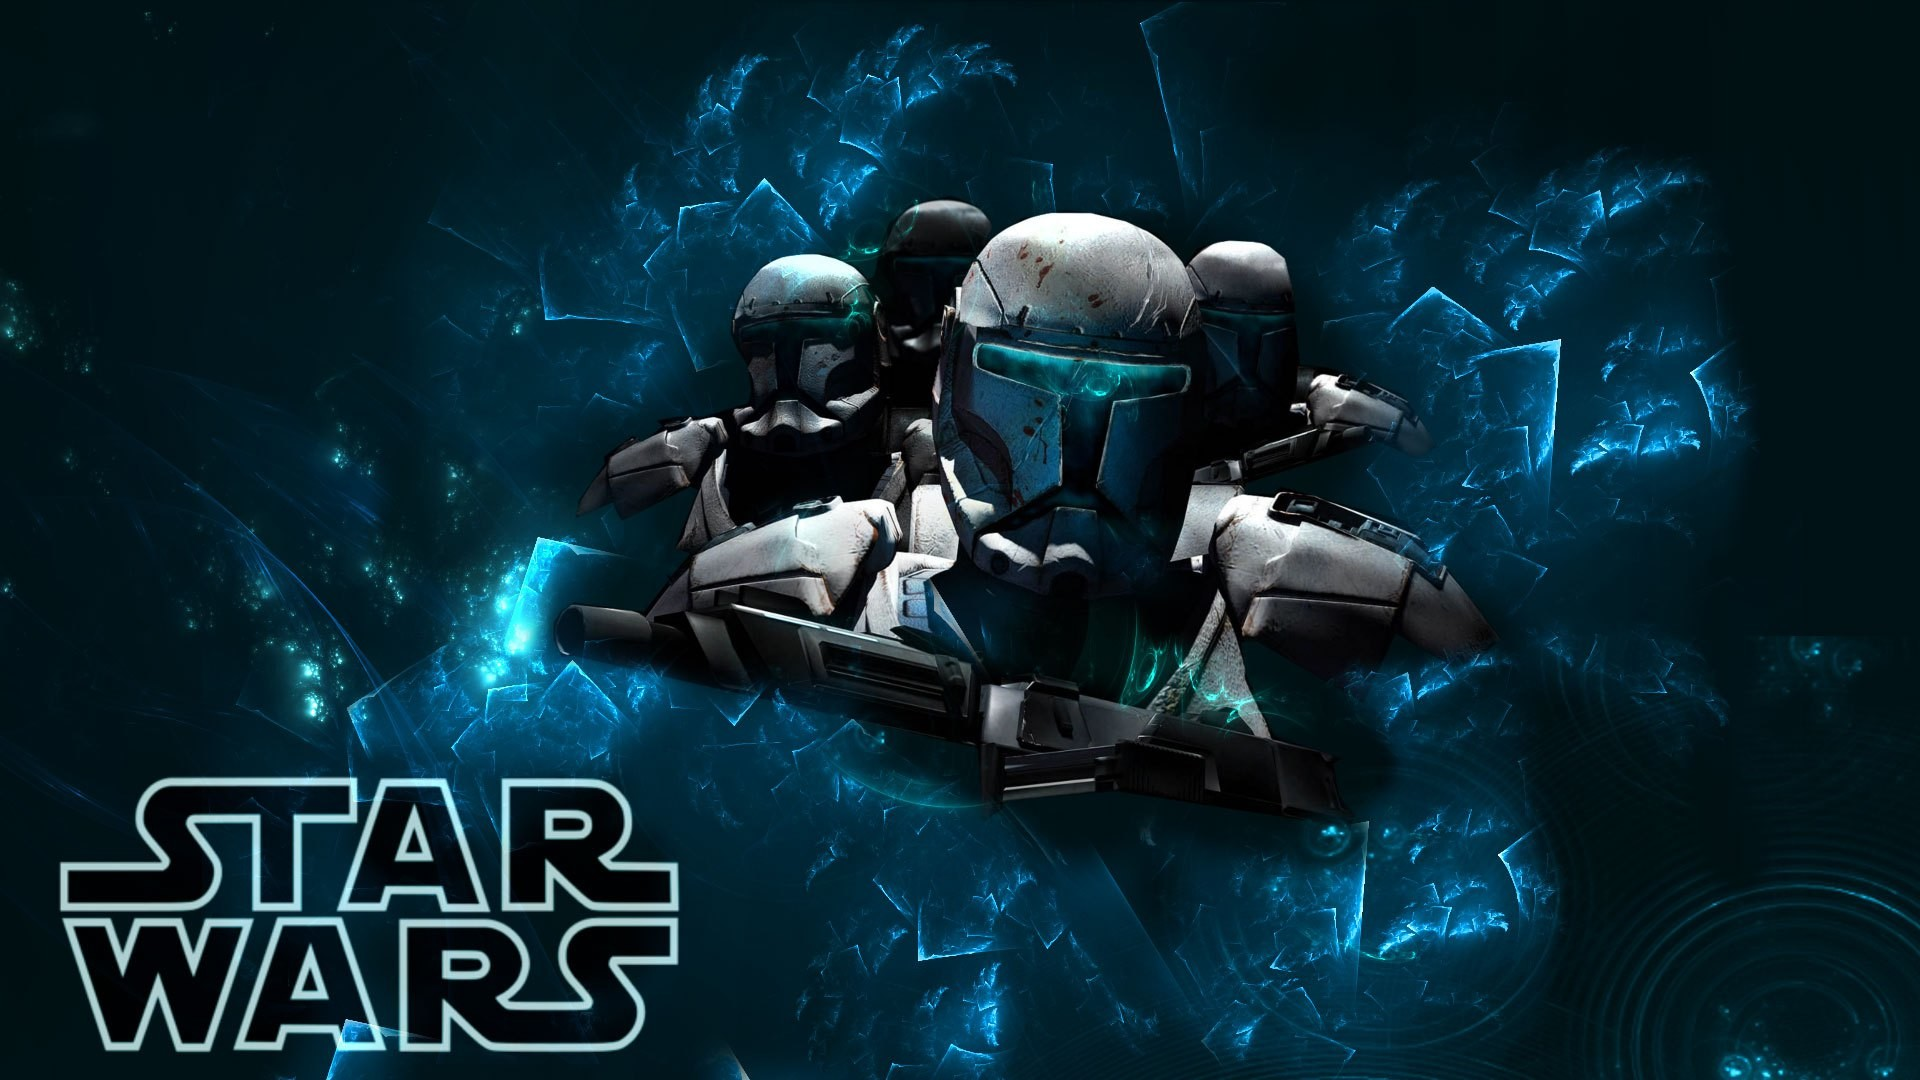 Cool live wallpapers for pc 50 images - Star wars cool backgrounds ...